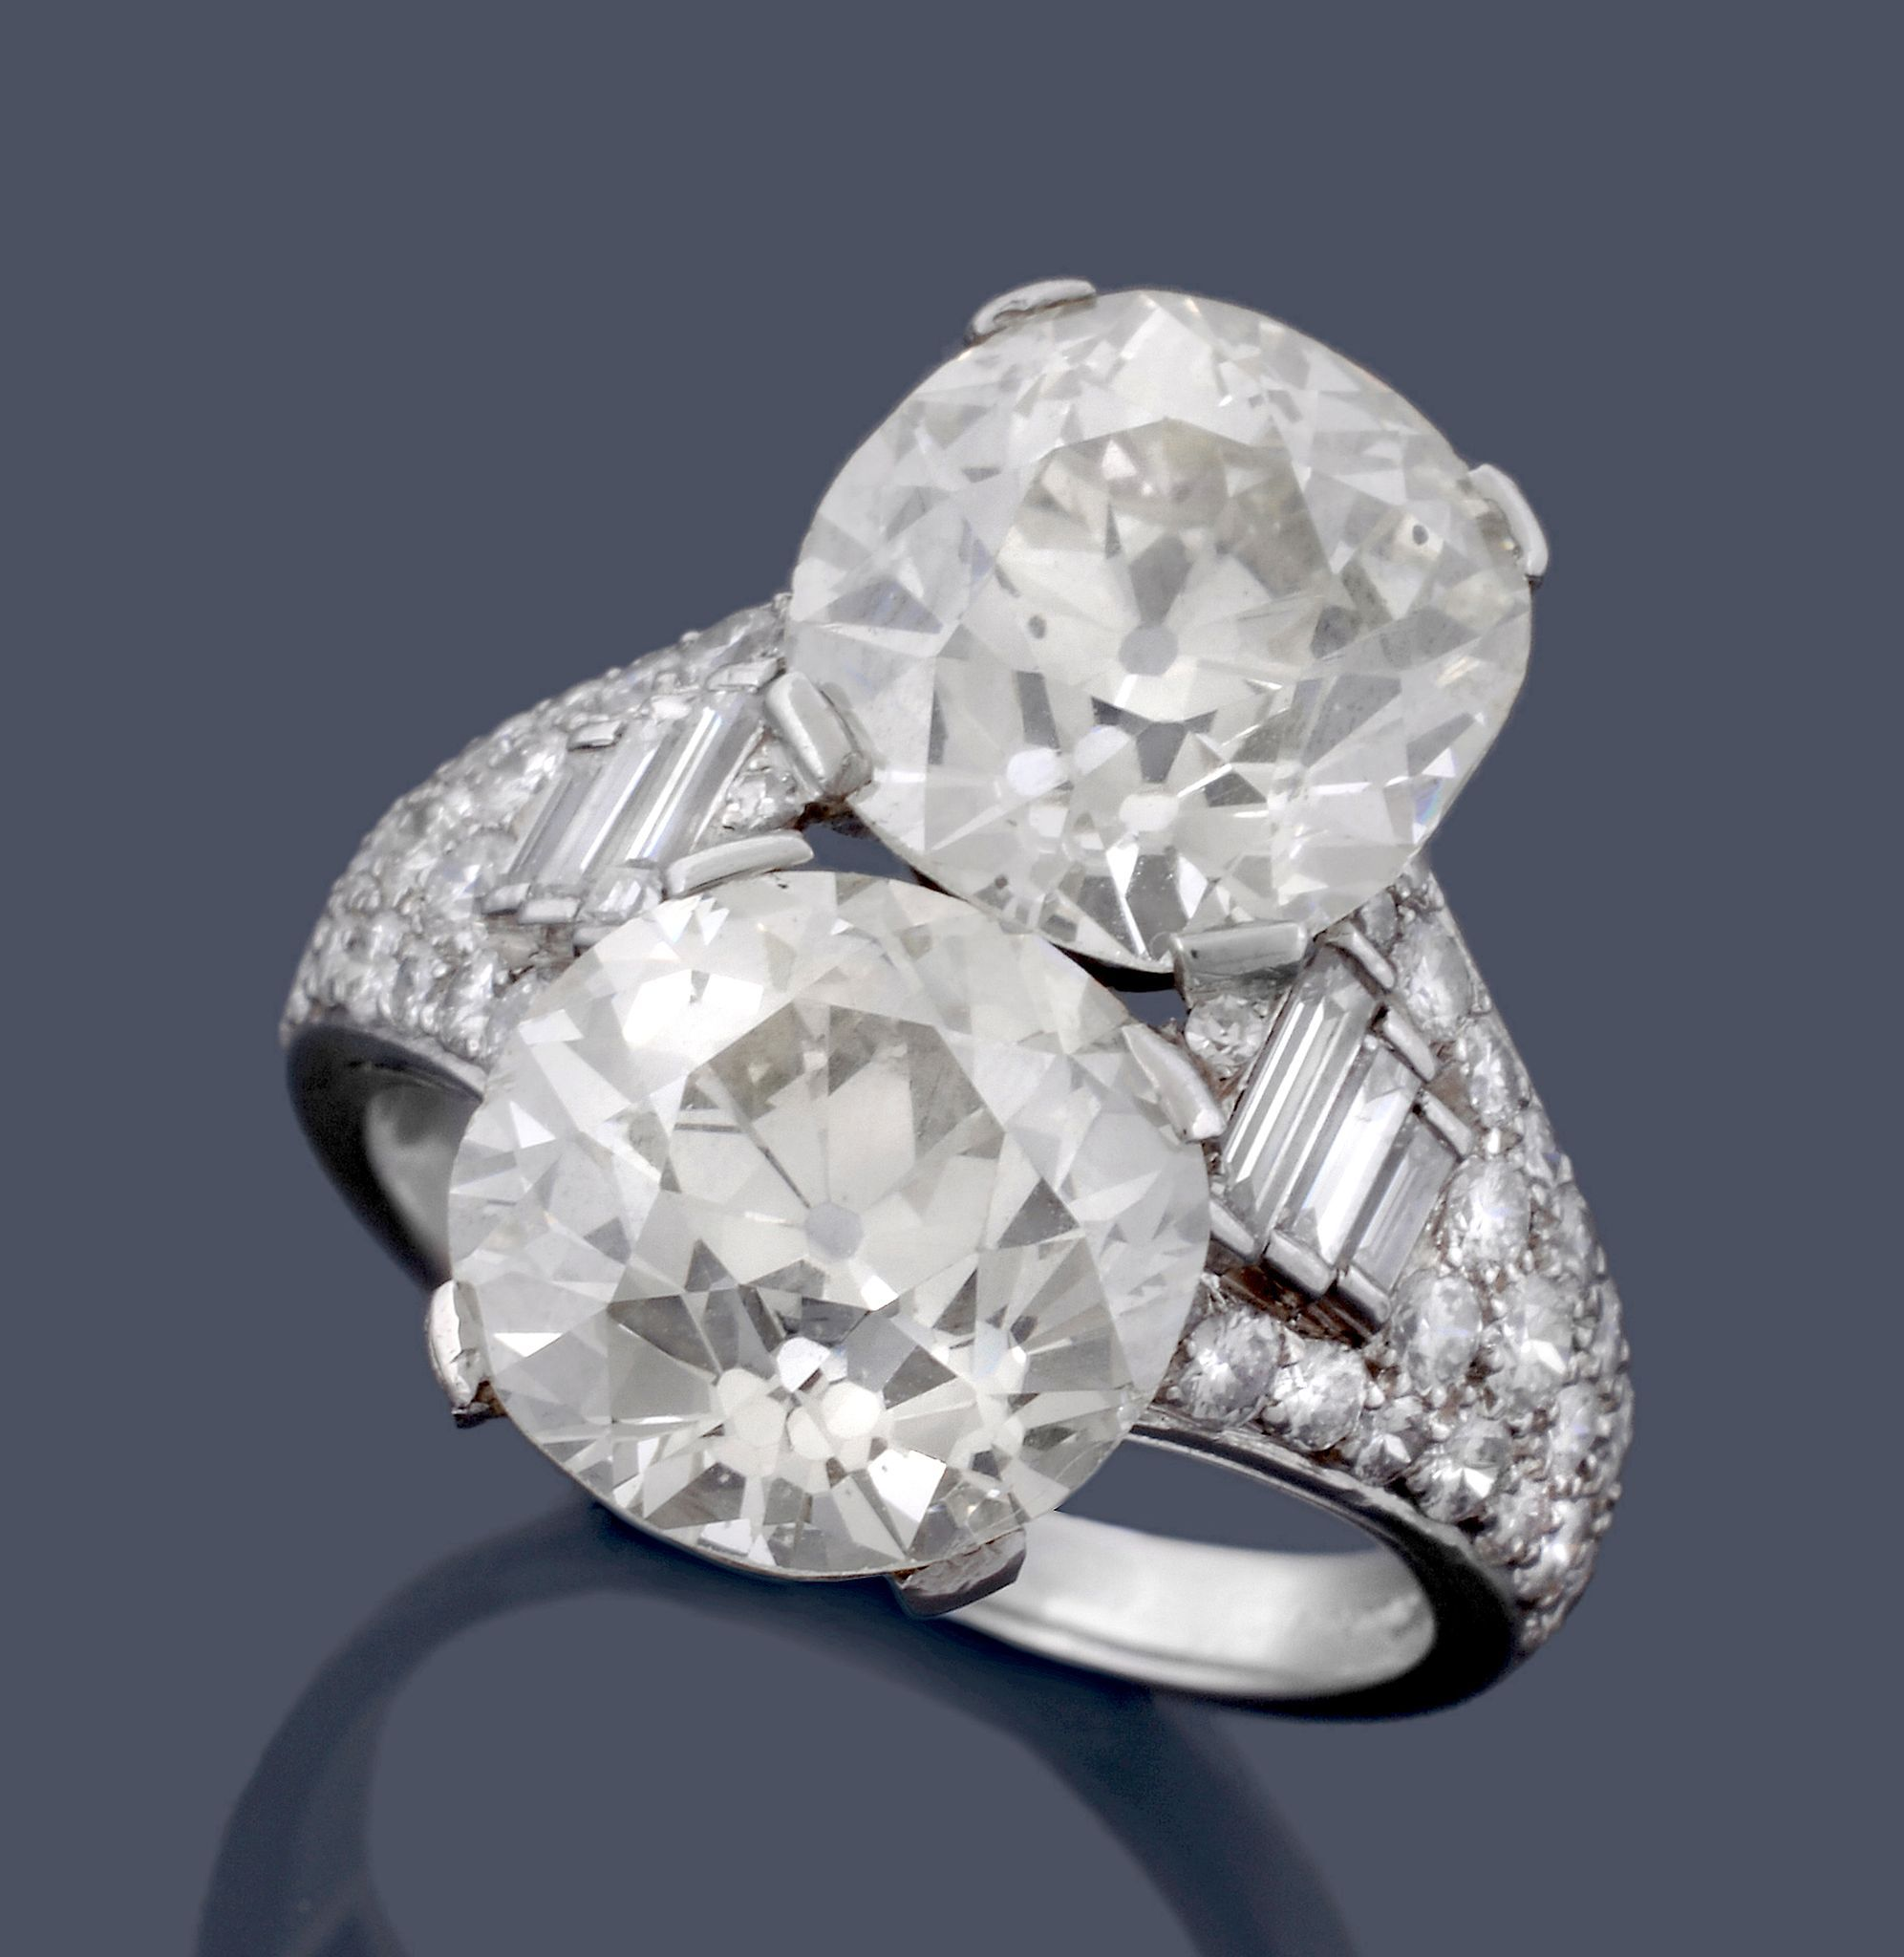 jewellery online ireland gifts wedding from designs mainpage irish ring est keanes jewellers diamond